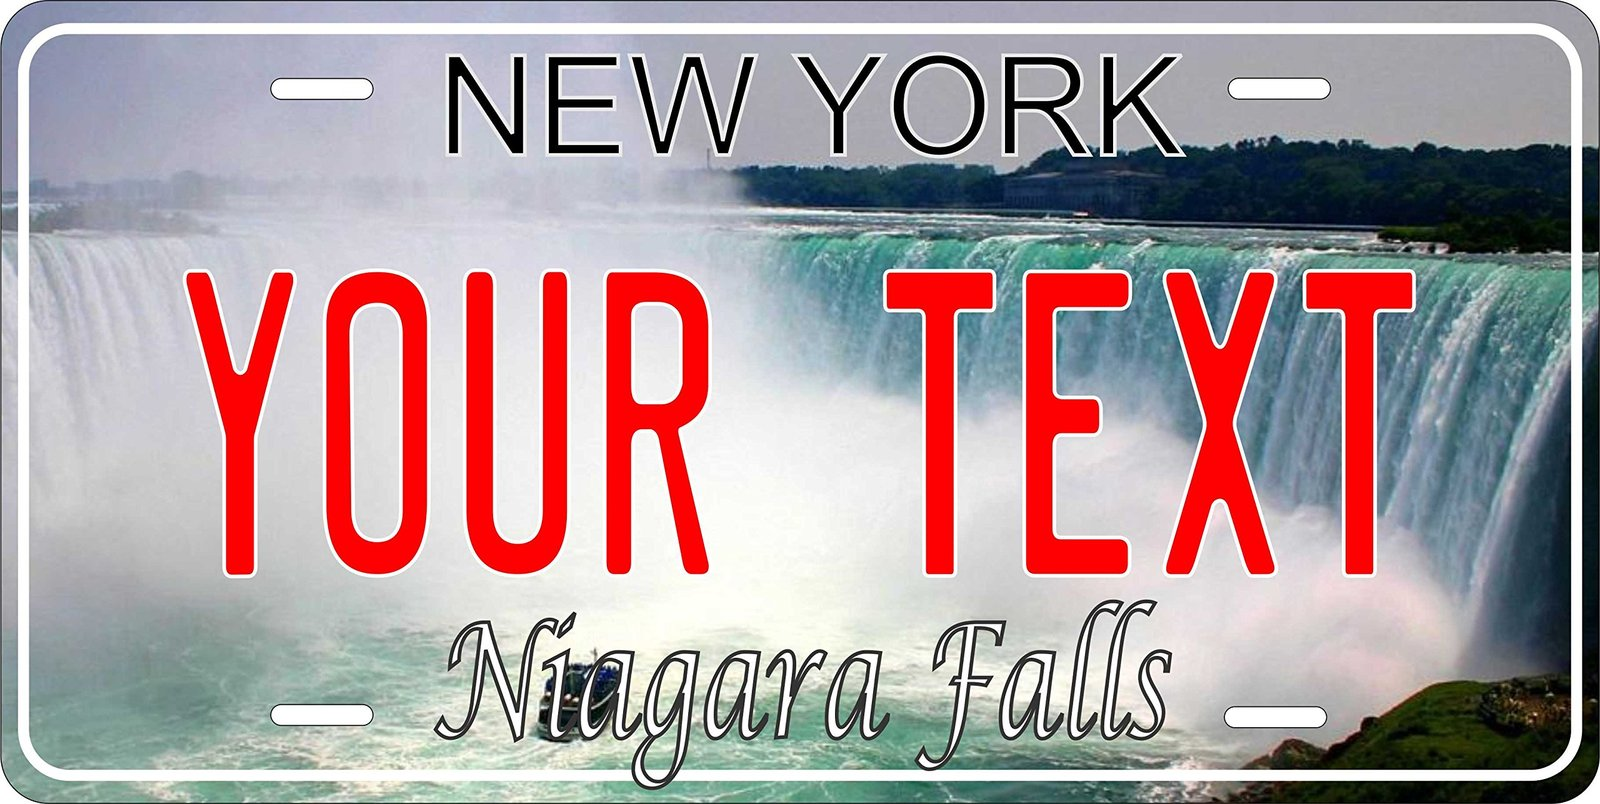 Niagara Falls New York Personalized Custom Novelty Tag Vehicle Car Auto Motor...